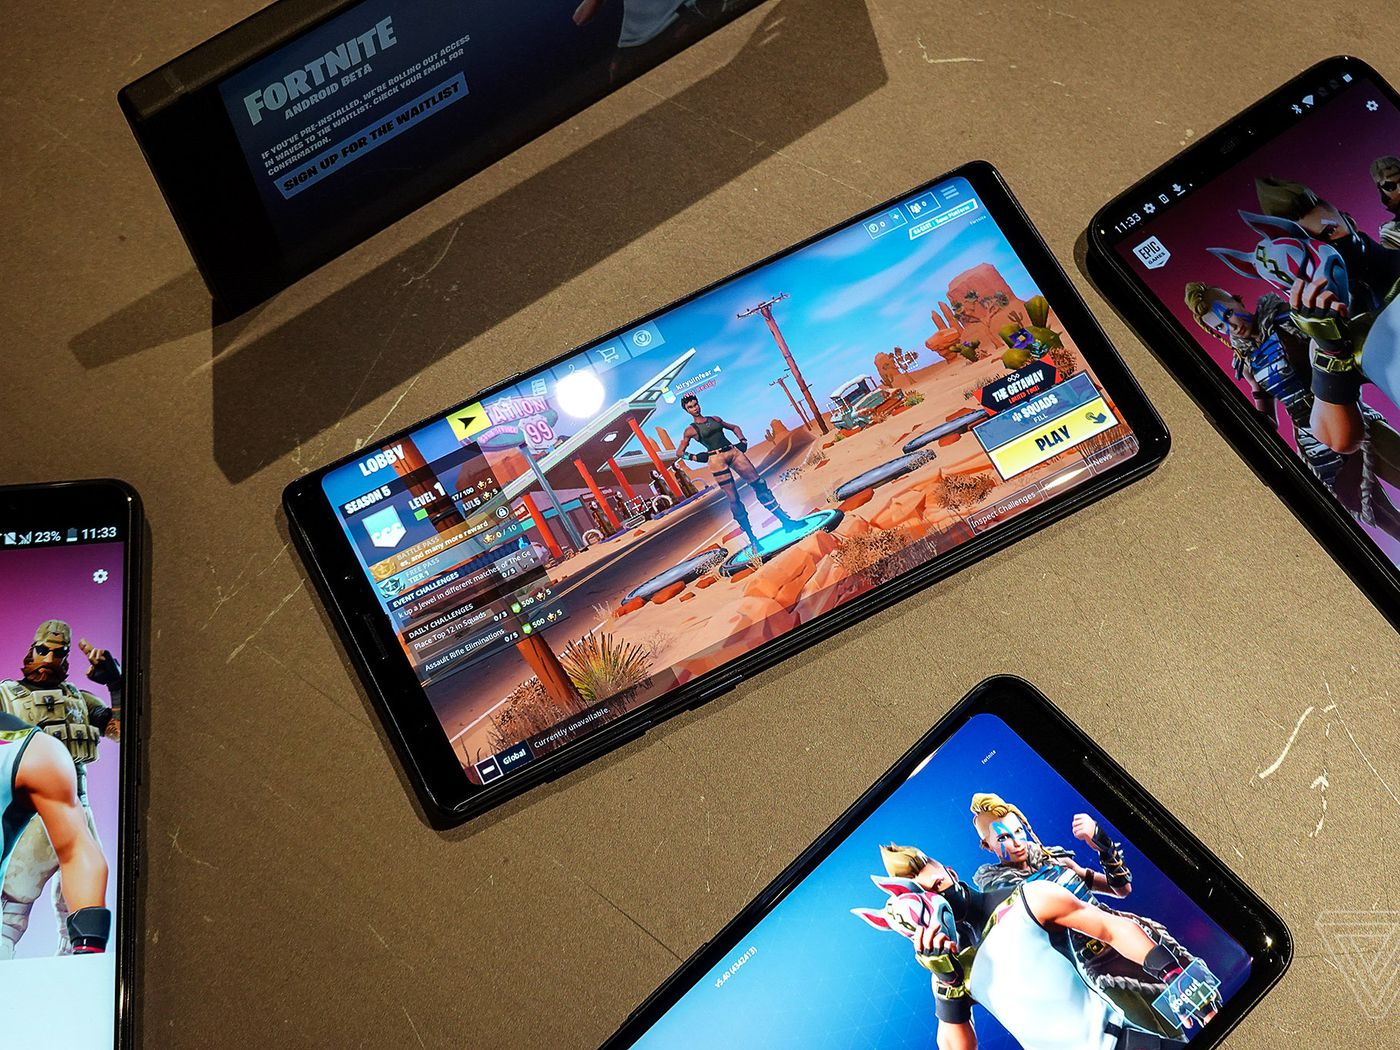 The 8 best games for your new iPhone, iPad, or Android phone